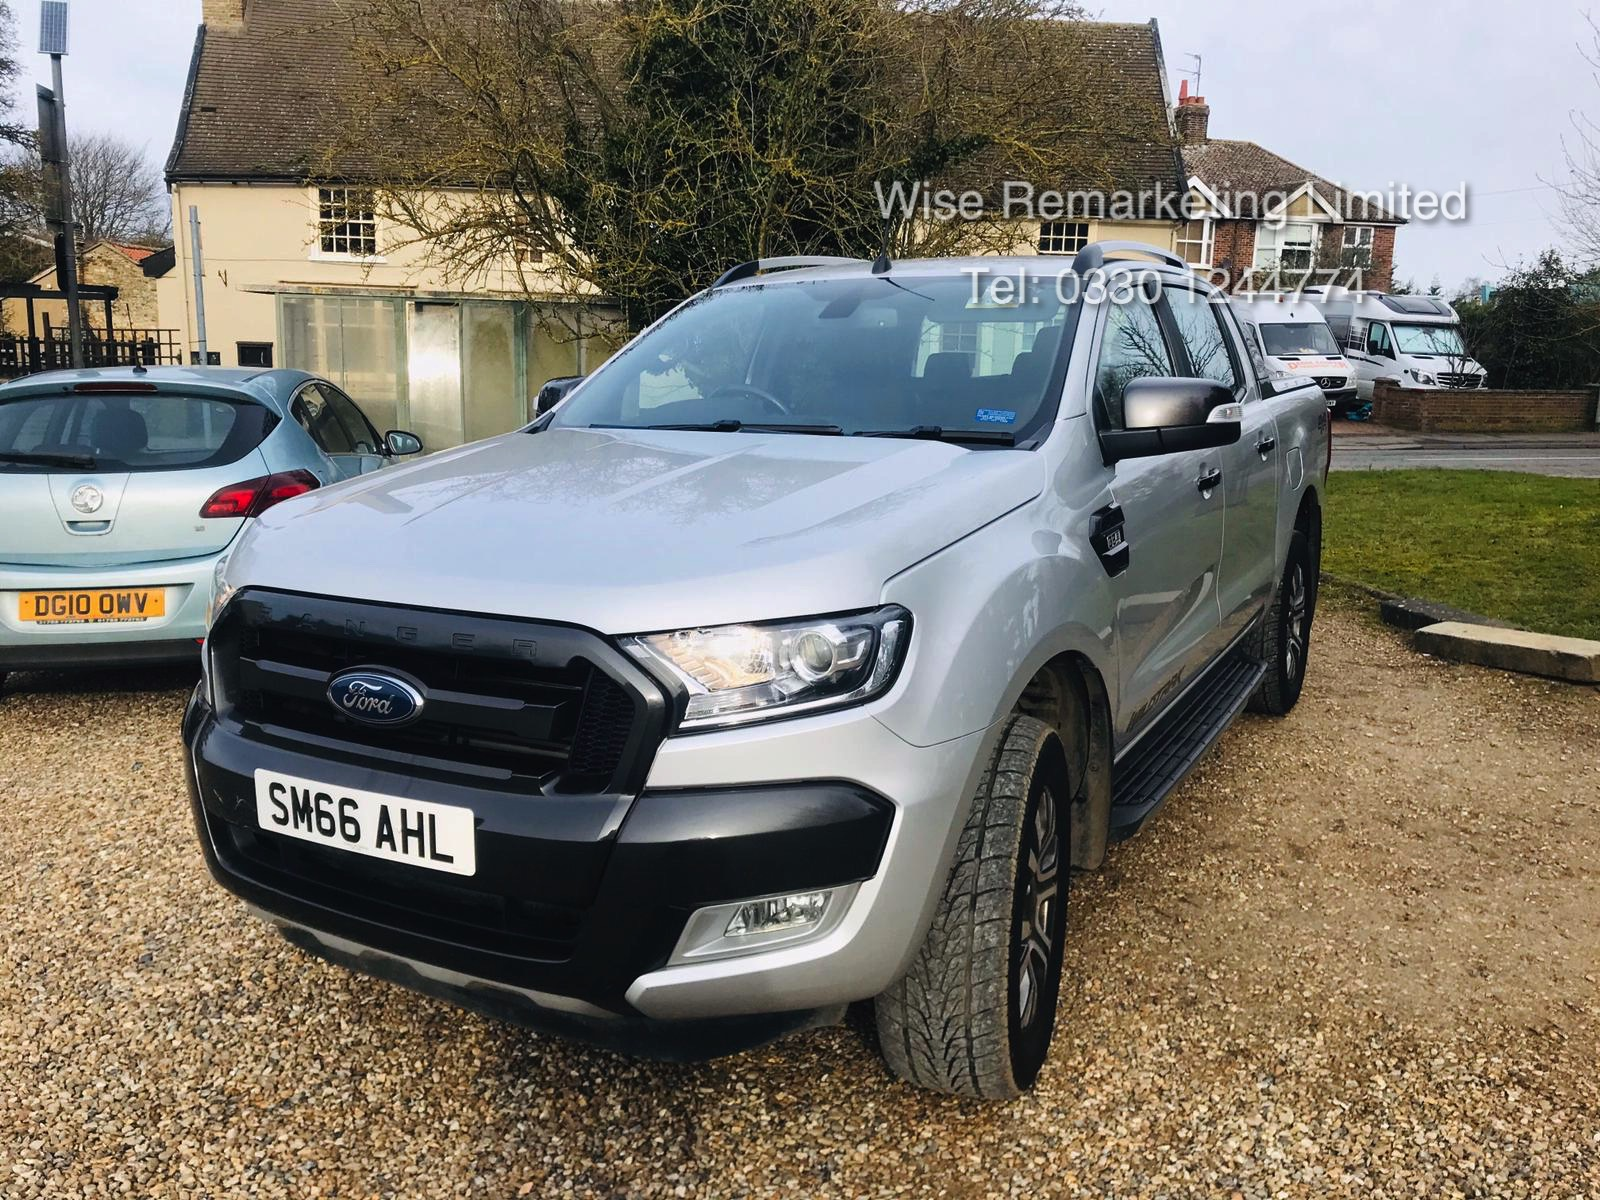 Ford Ranger 3.2 TDCI WILDTRAK - Auto - 2017 Model - 1 Former Keeper - 4x4 - TOP OF THE RANGE - Image 3 of 16